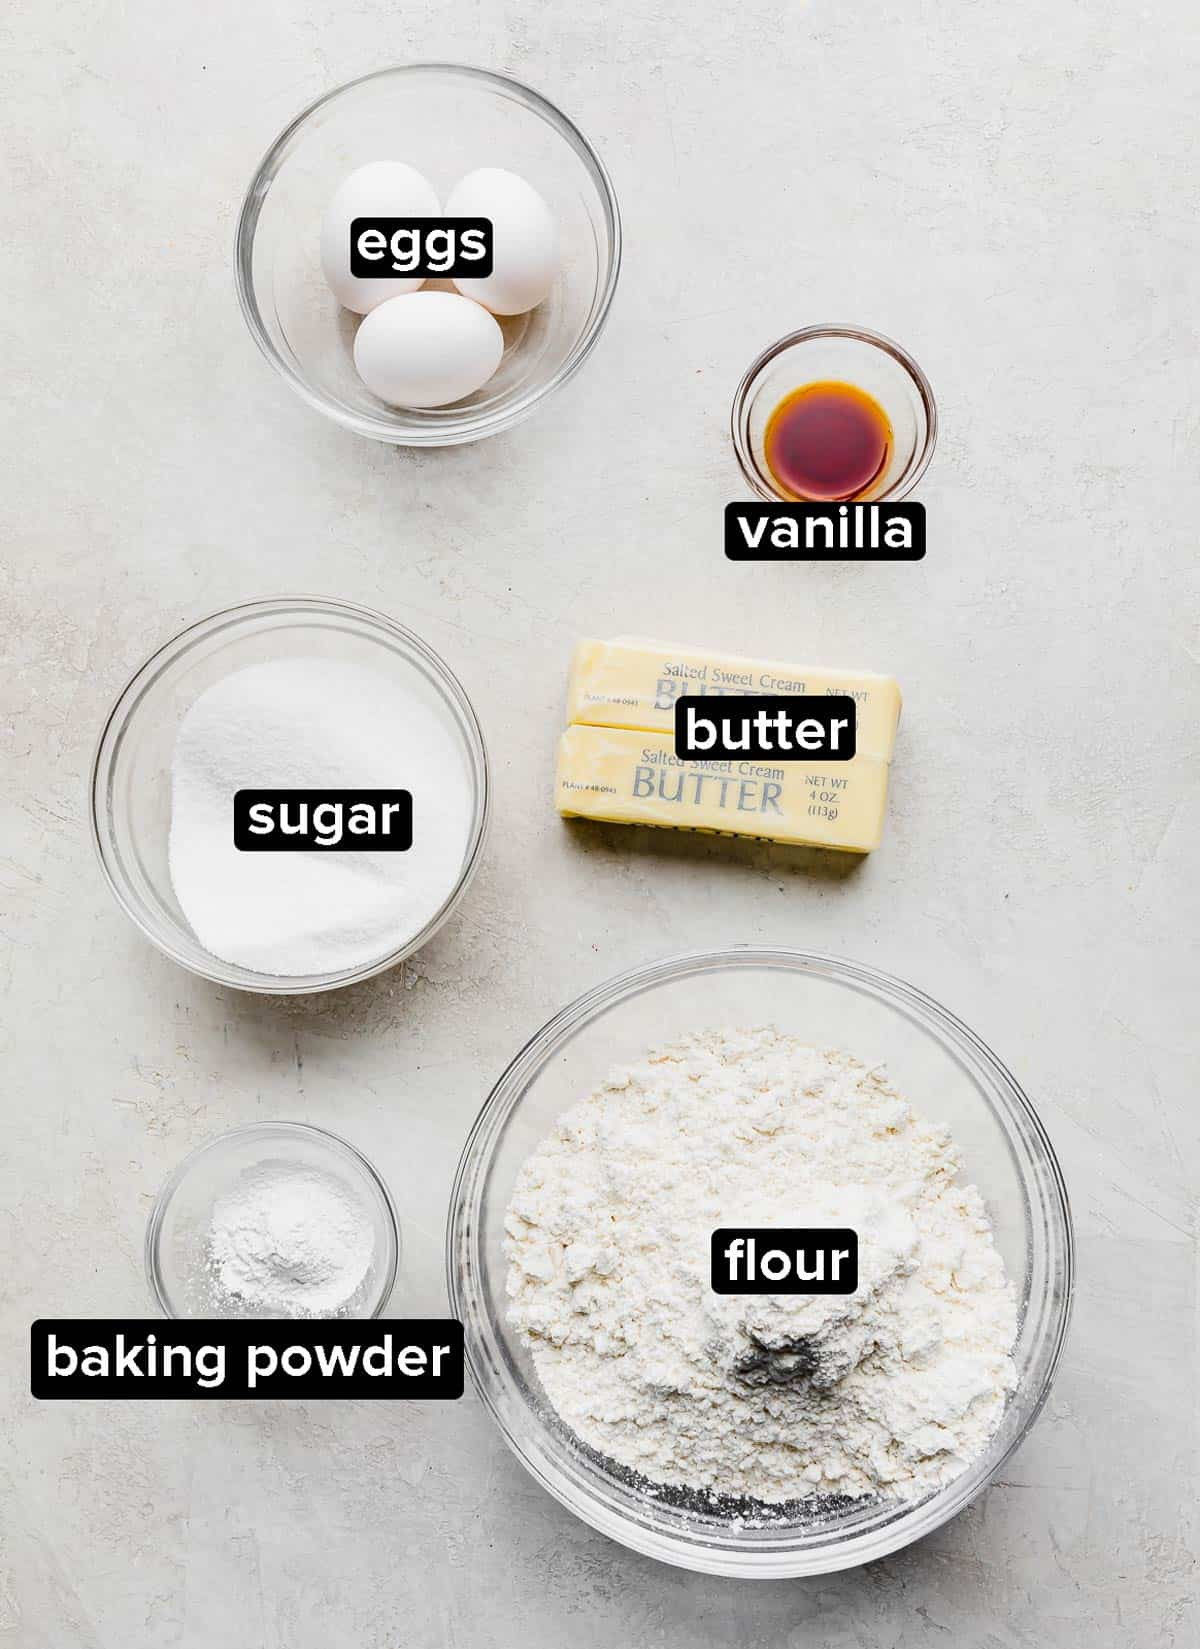 Ingredients used to make No Fail Sugar Cookies, on a gray background.